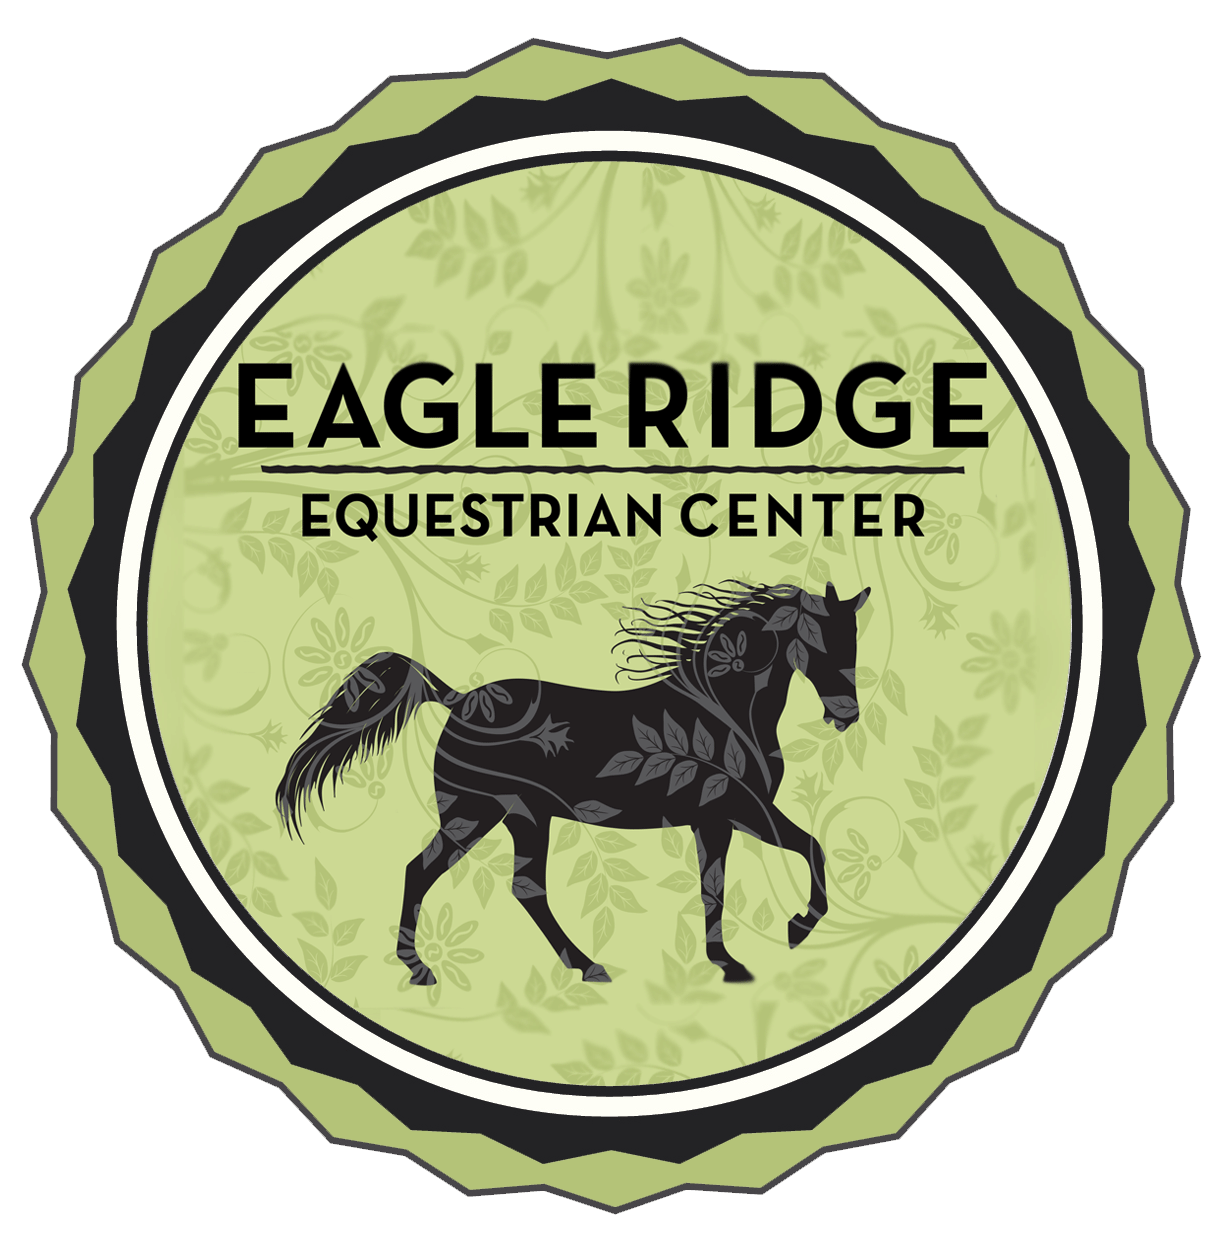 Eagle Ridge Equestrian